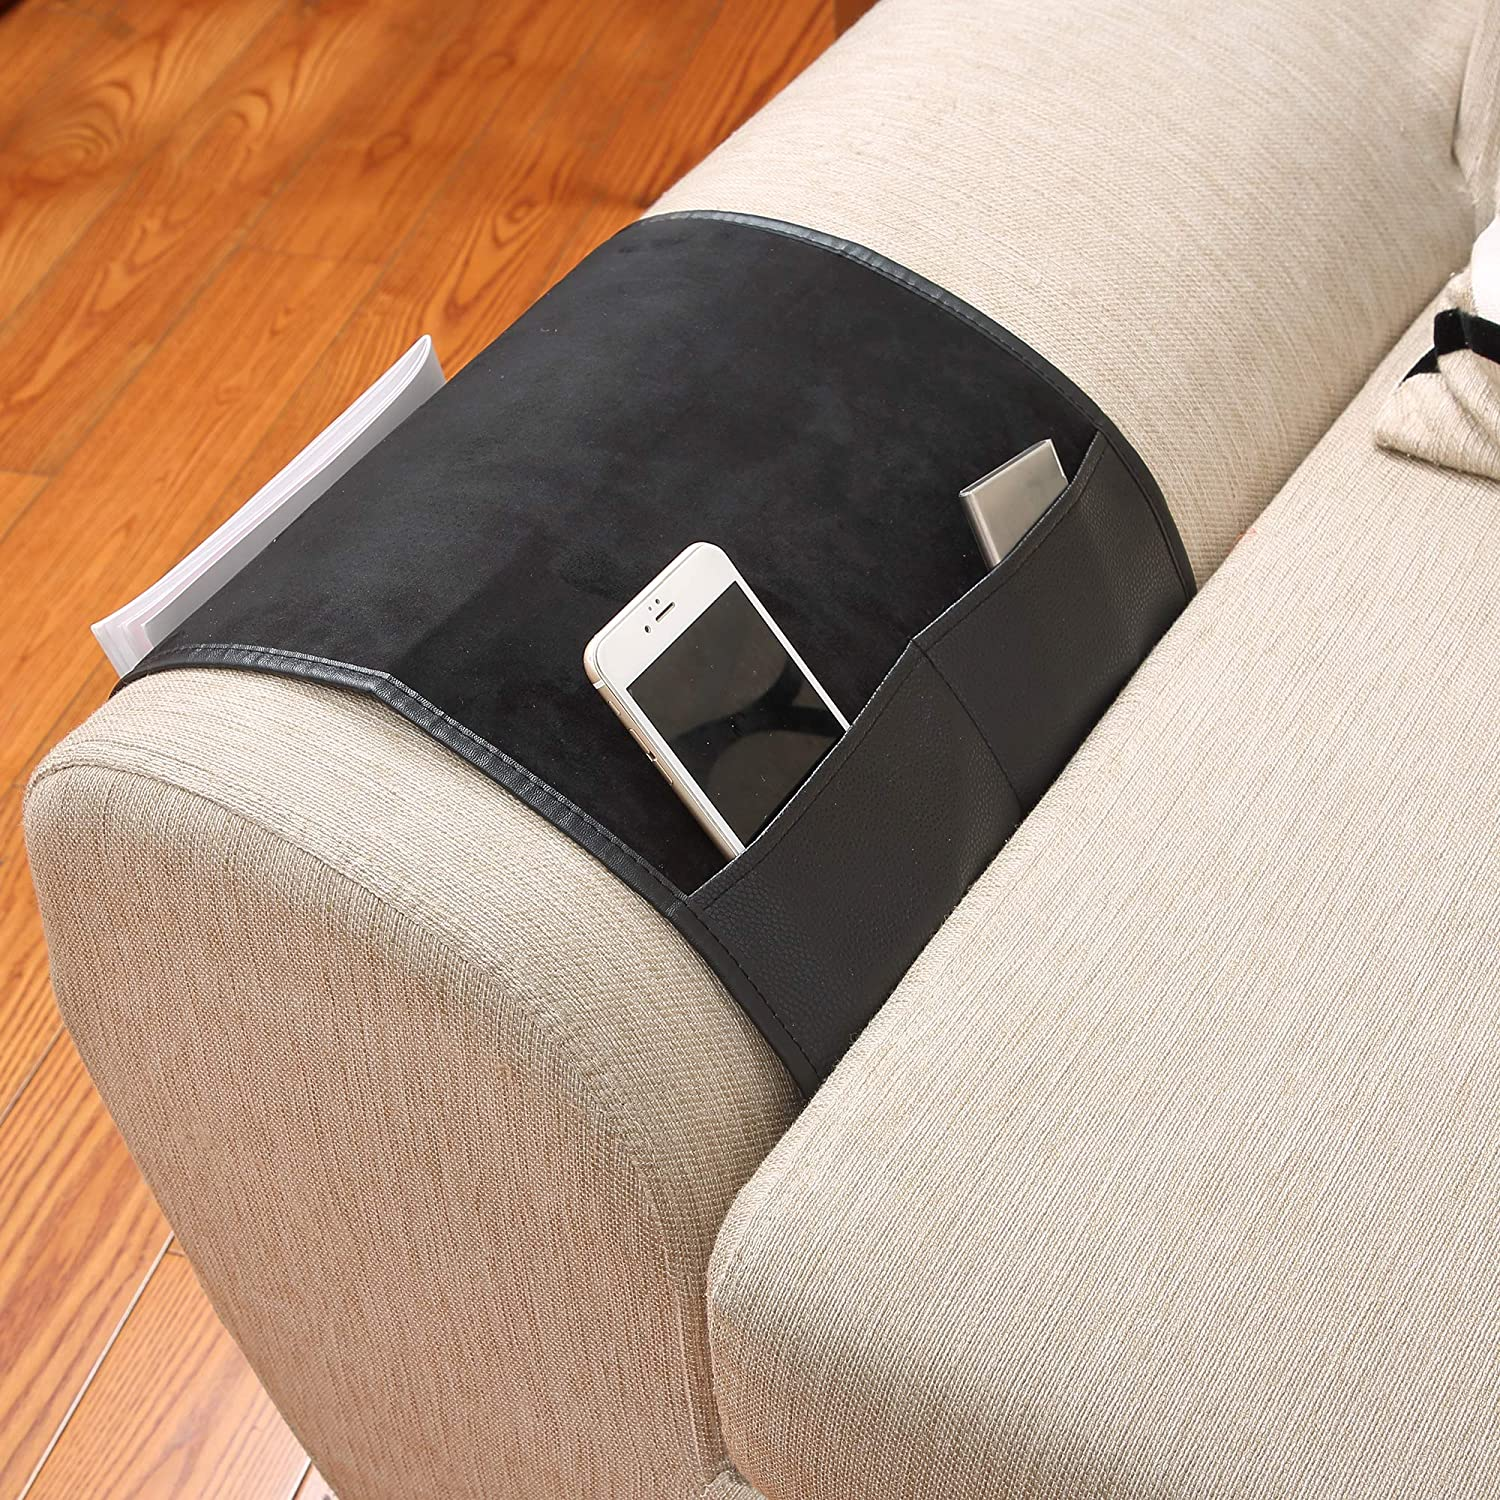 Book Magazines Khaki PUTING Non-Slip Space Saver Sofa Couch Armrest Organizer TV Remote Control Holder Fits for Phone